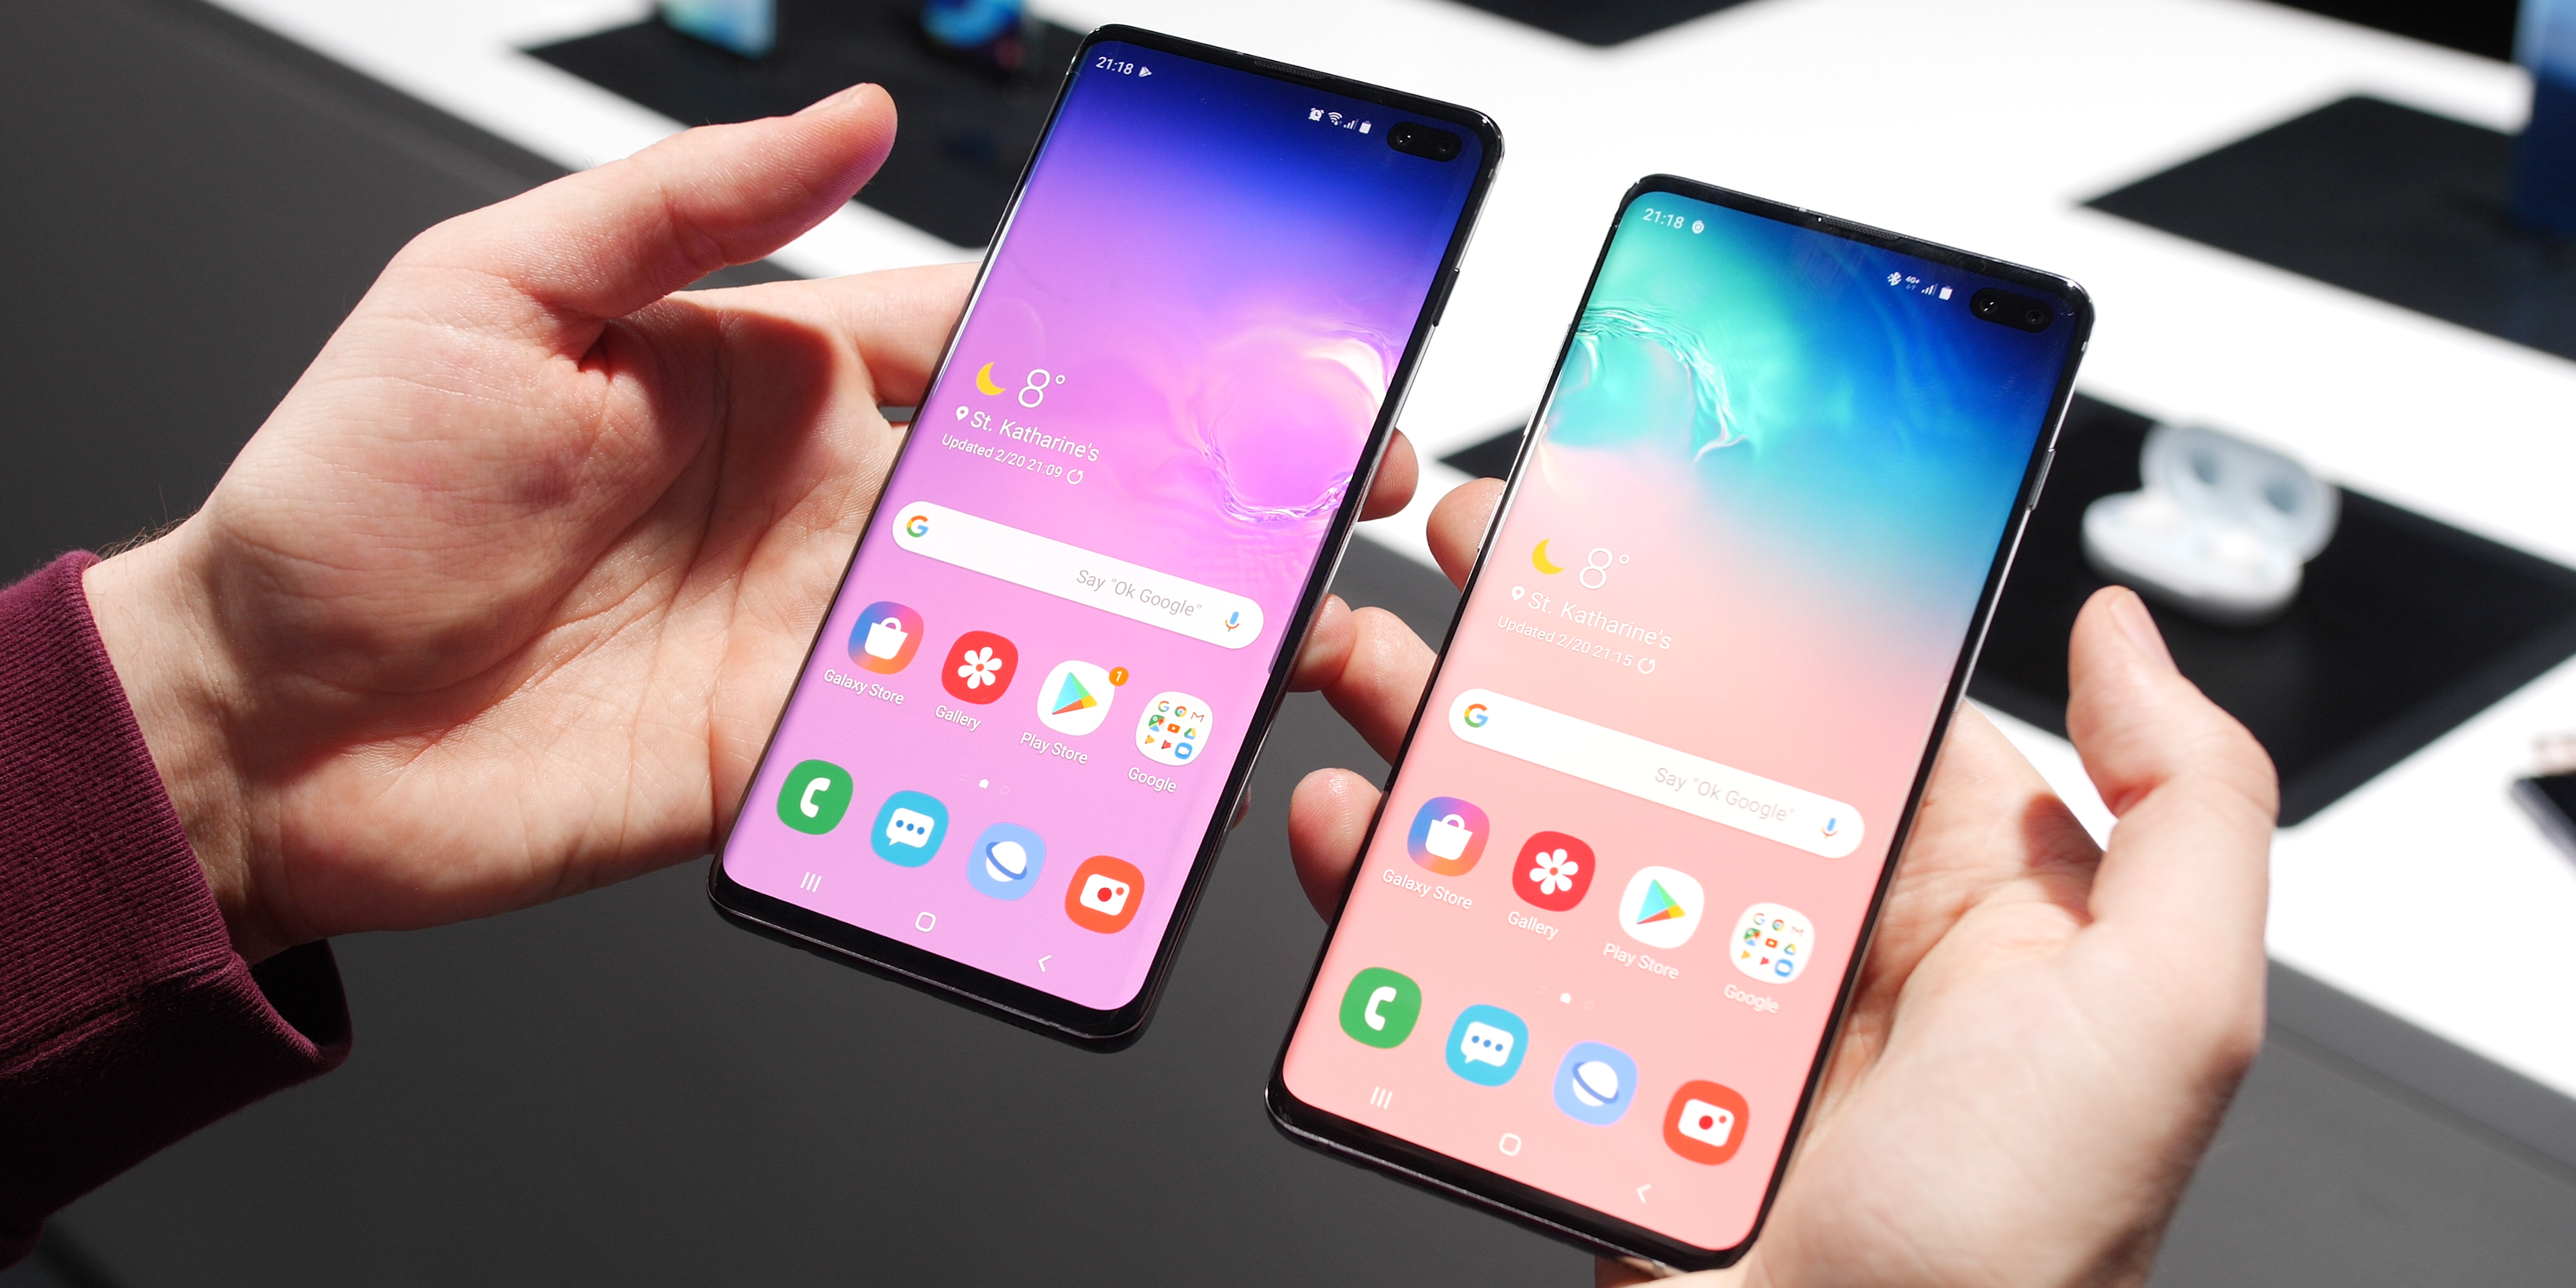 Samsung Galaxy S10 and S10+ design and hardware